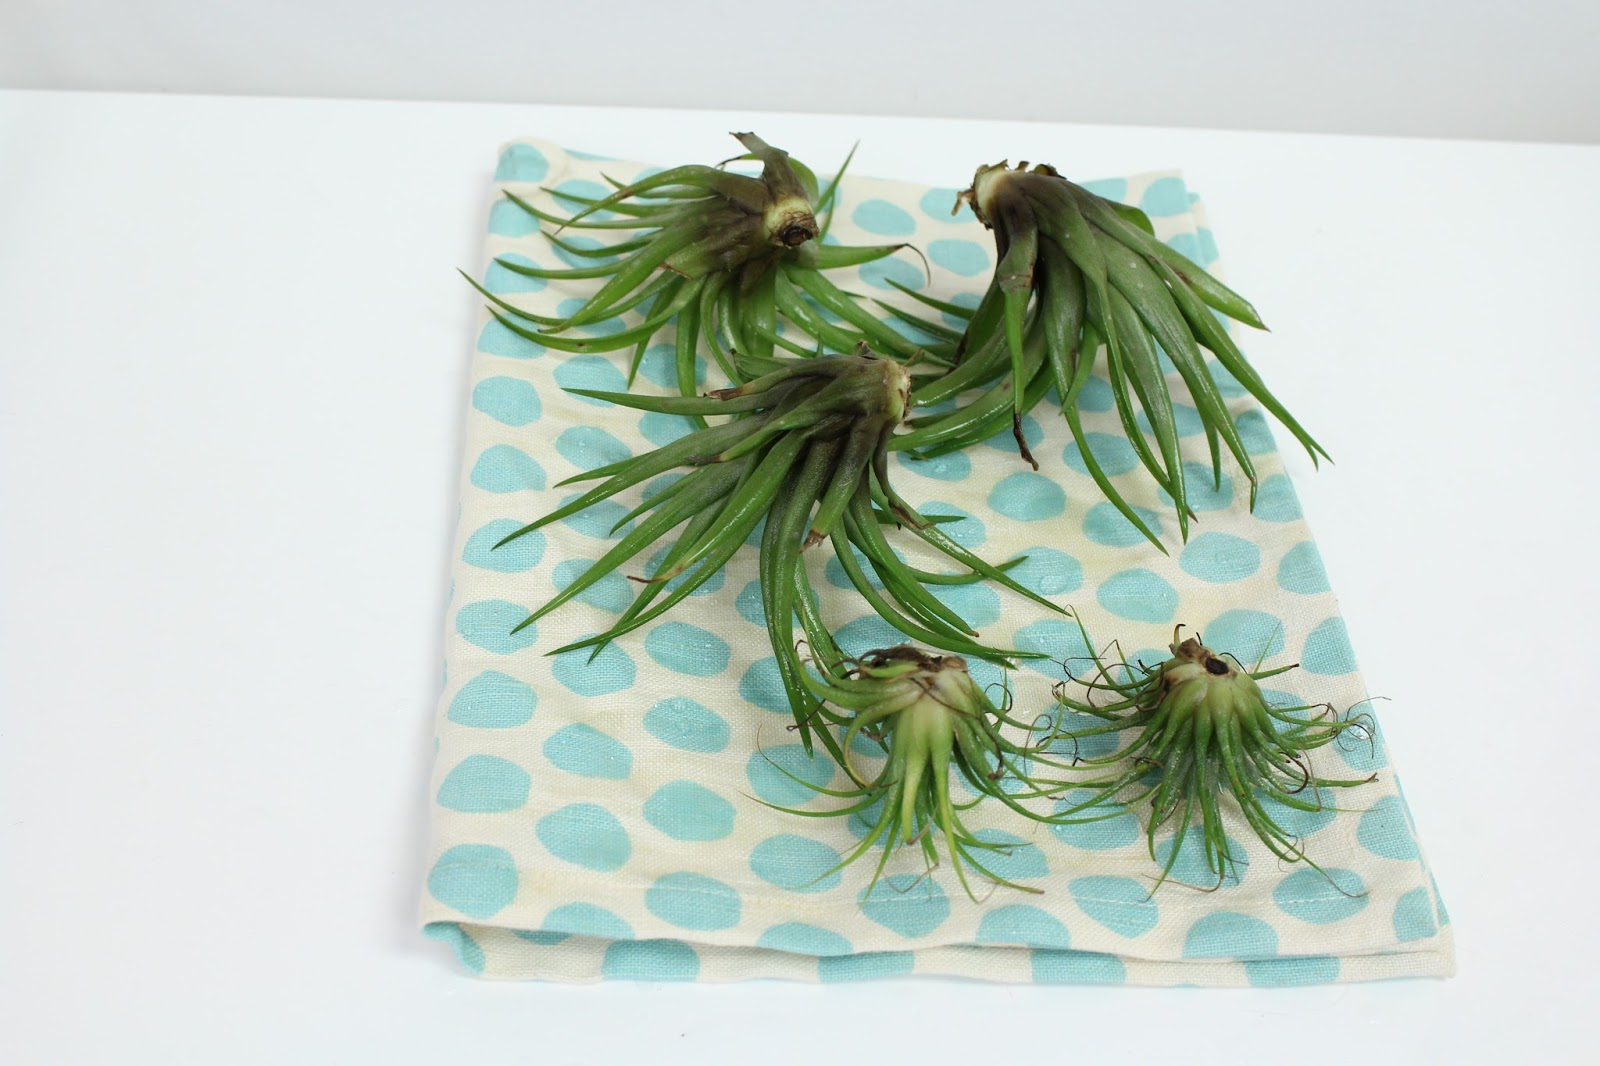 Air plants drying out